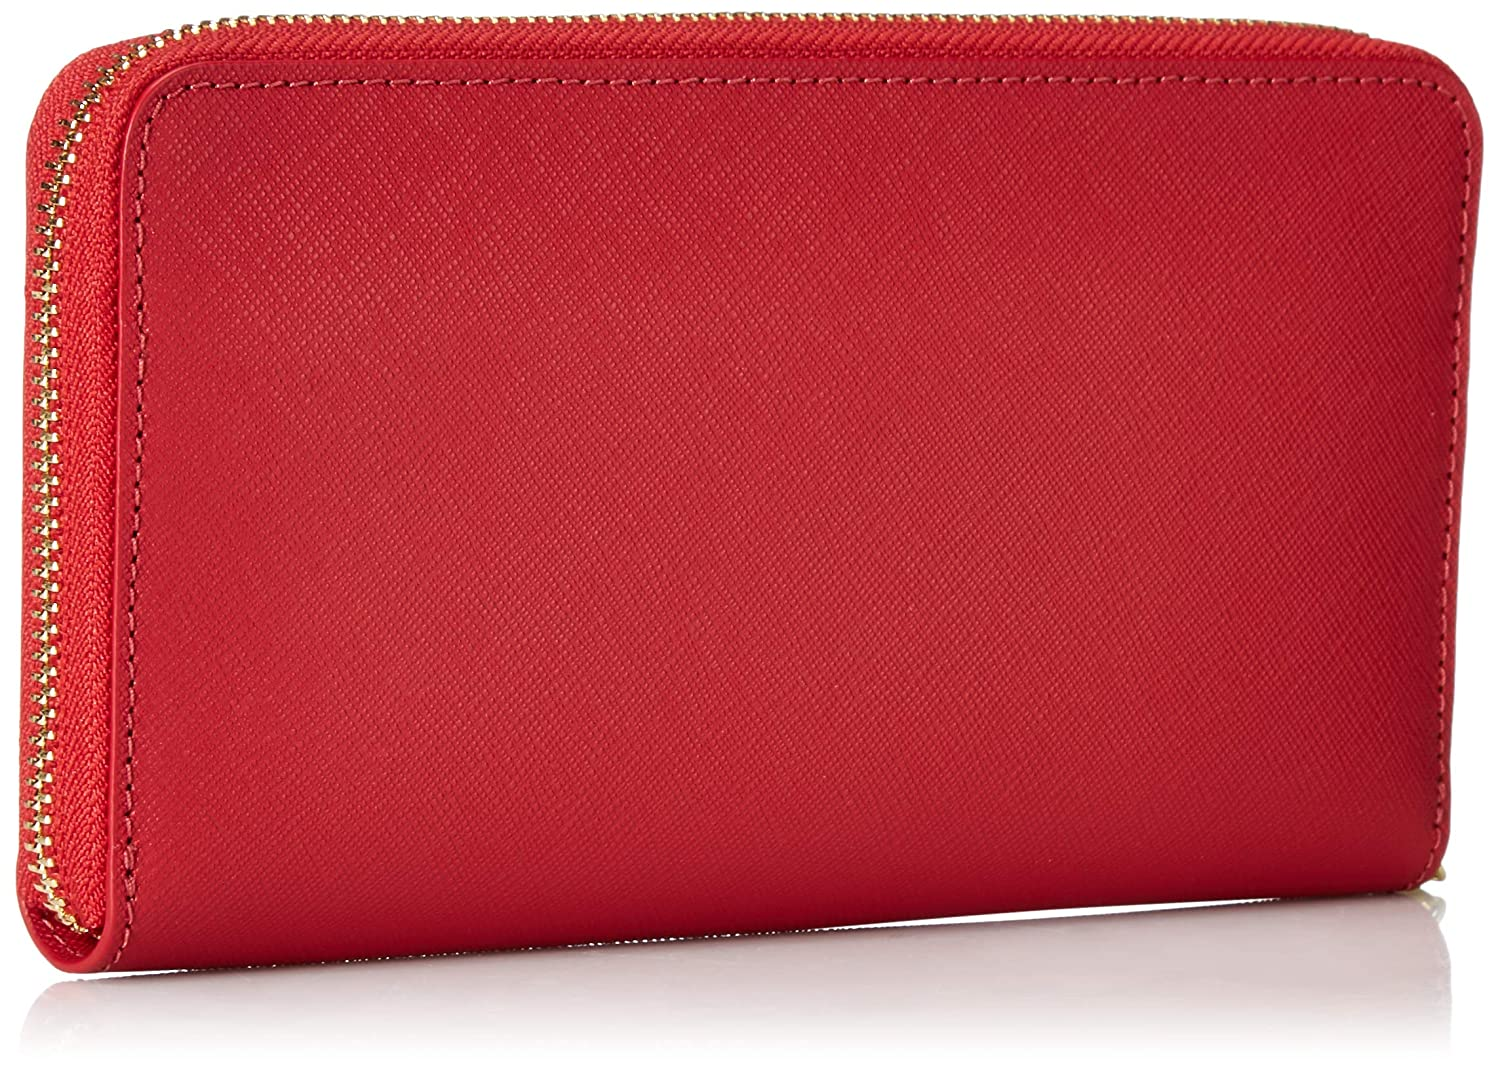 ca61f9eacc1 Amazon.com  Tory Burch Leather Kir Royale Emerson Zip Continental Wallet   Clothing